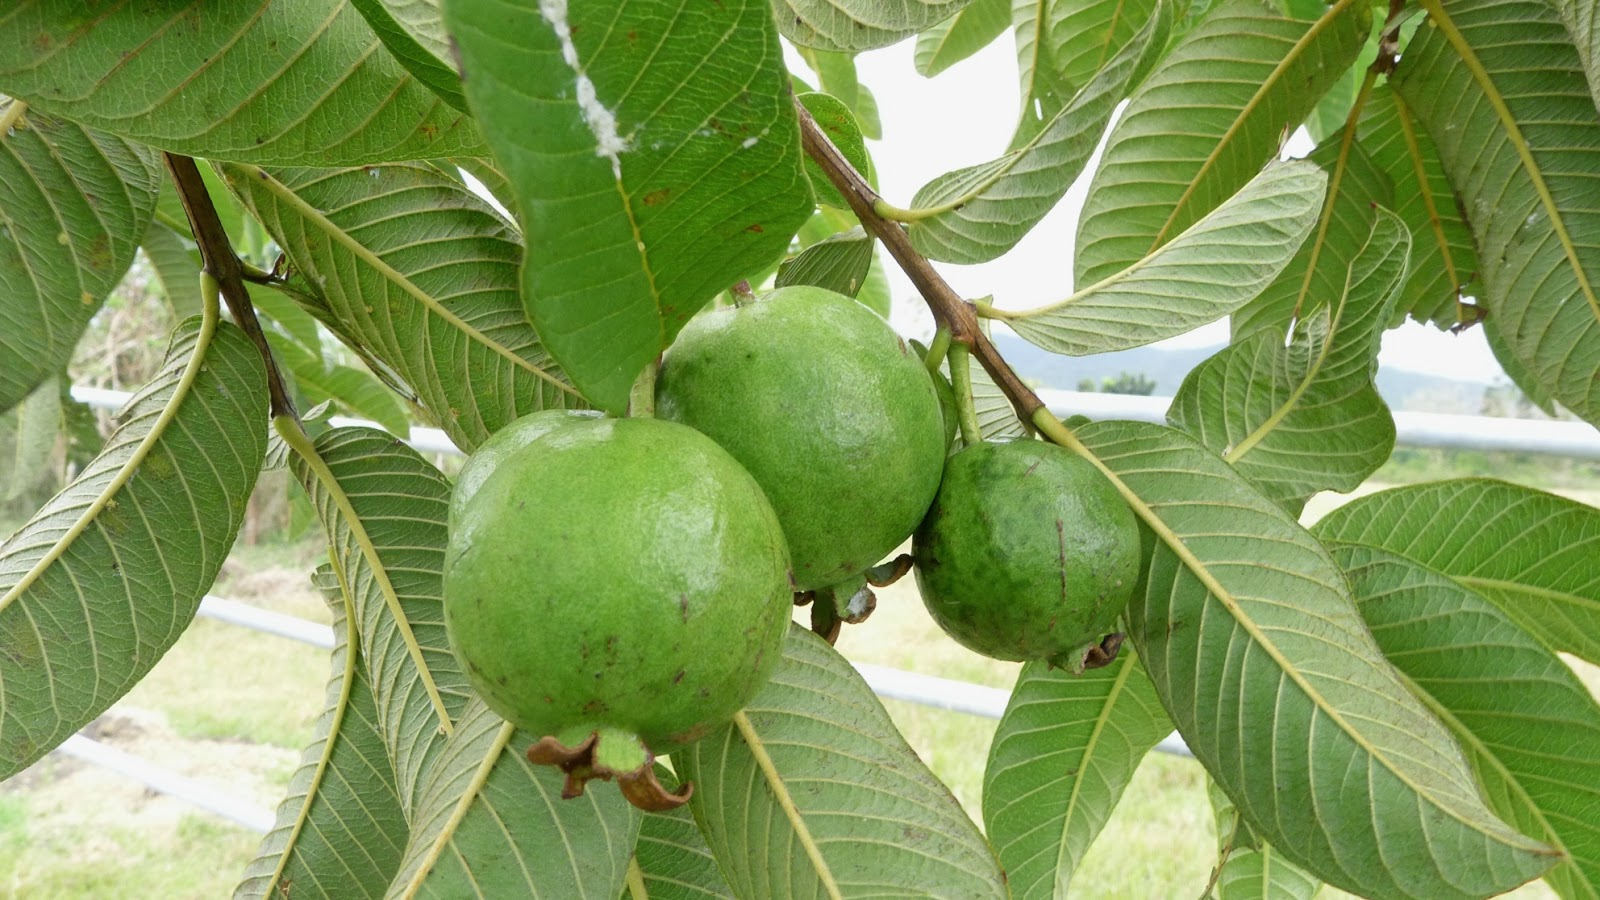 plants as an antiseptic in the philippines For a long time, philippine herbal medicine has been unrecognized and has  been  research and years of clinical trials, the department has approved 10  plants for use by the  bayabas or guava as anthelminthic, astringent and  antiseptic 5.